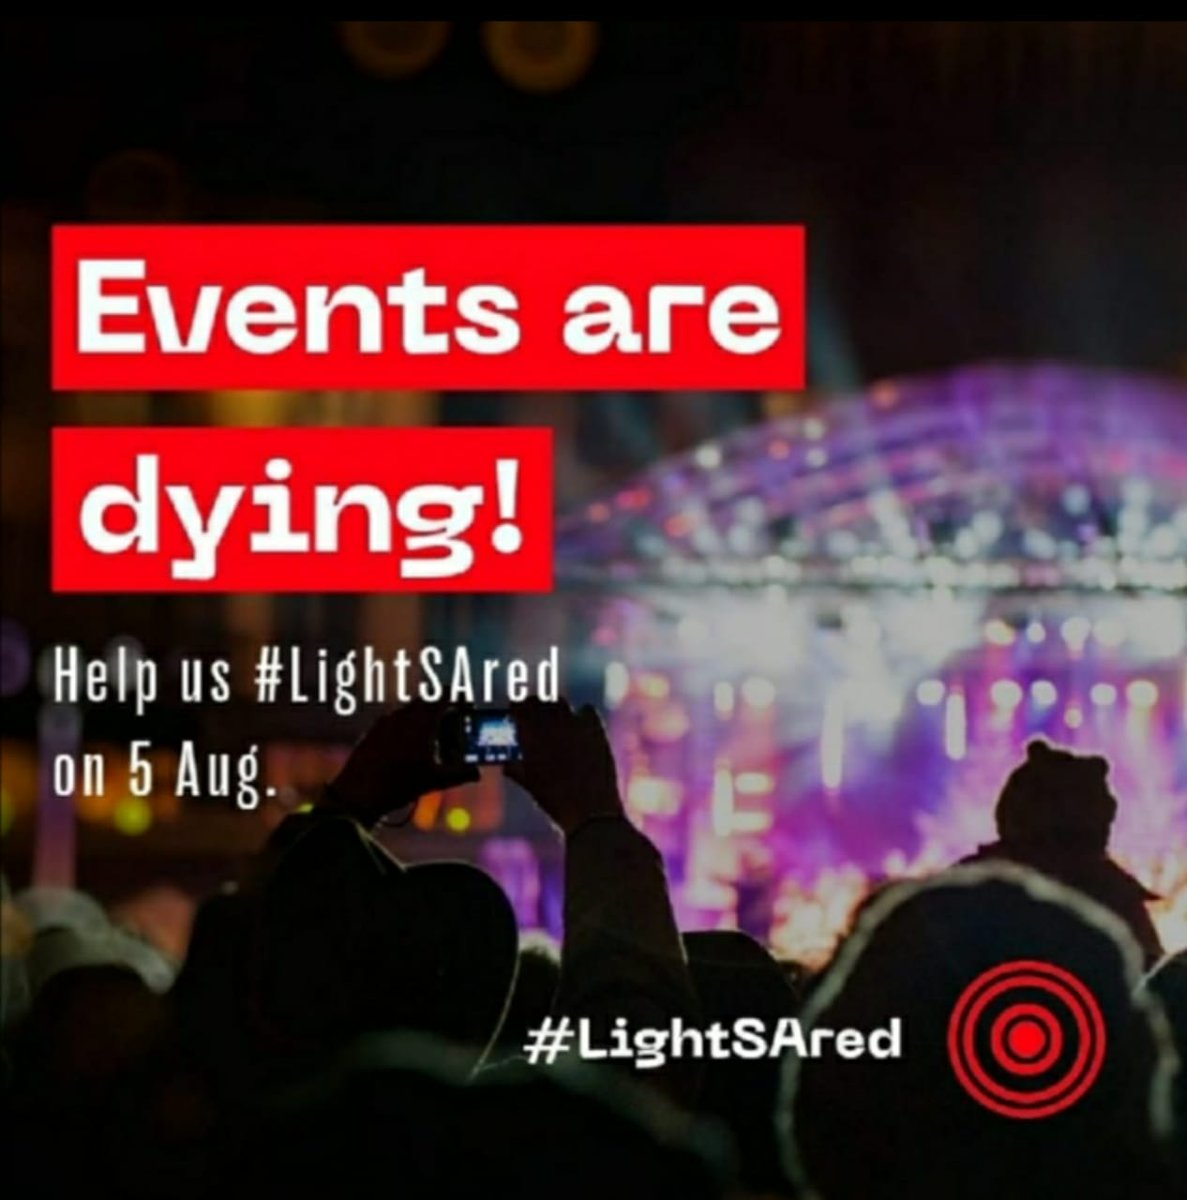 We join our peers in our mission to reopen the sector.  #LightSAred #events  #southafrica https://t.co/QMulsSIAs9